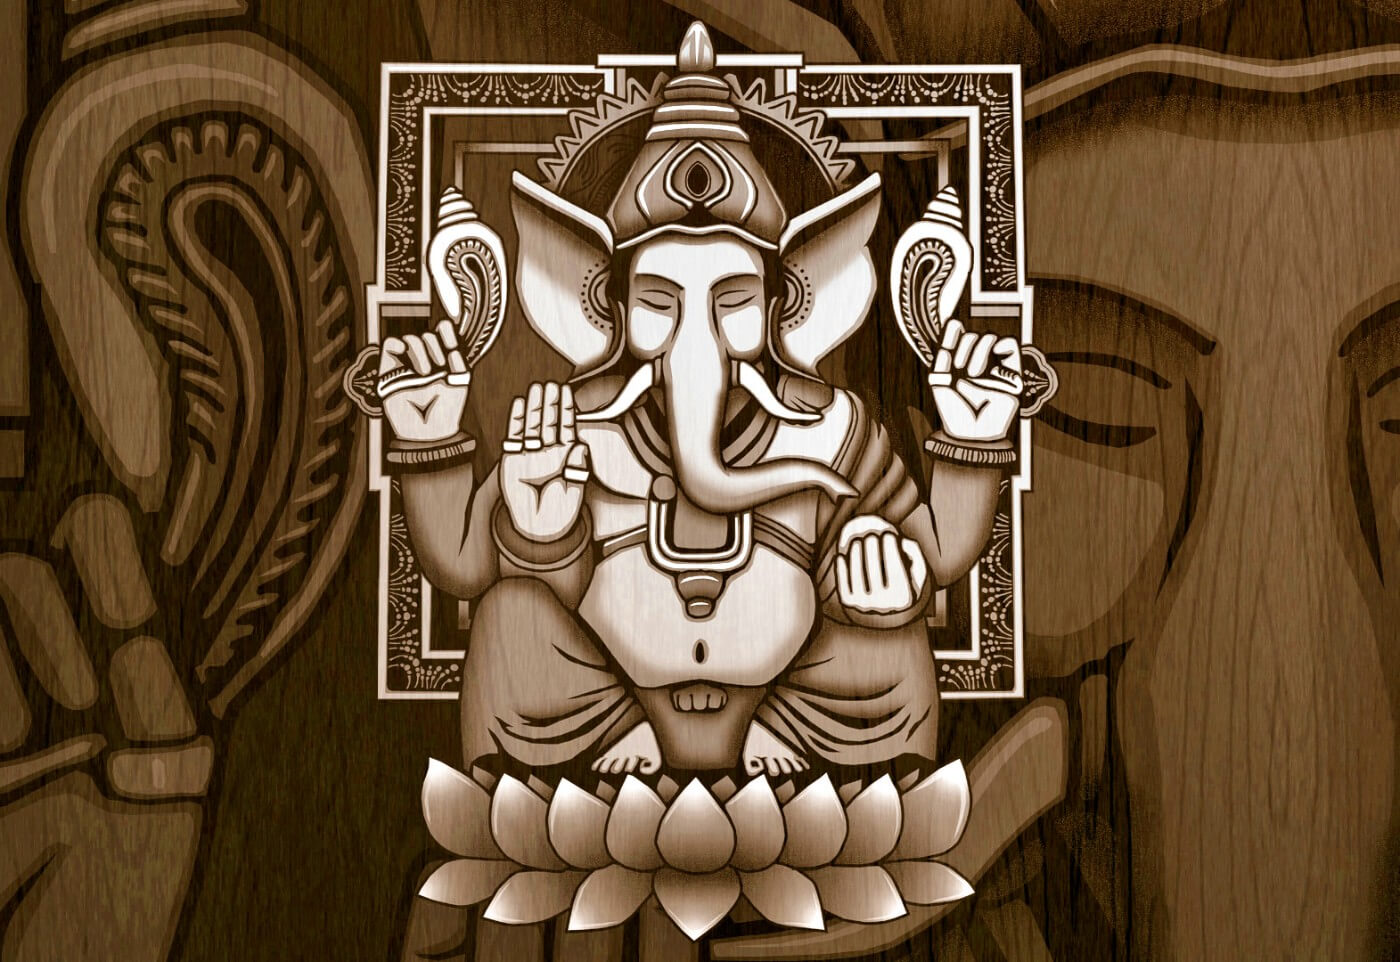 Ganesha Paintings — Ganesha Old Vintage Paintings | Buy Posters, Frames, Canvas, Digital Art & Large Size Prints